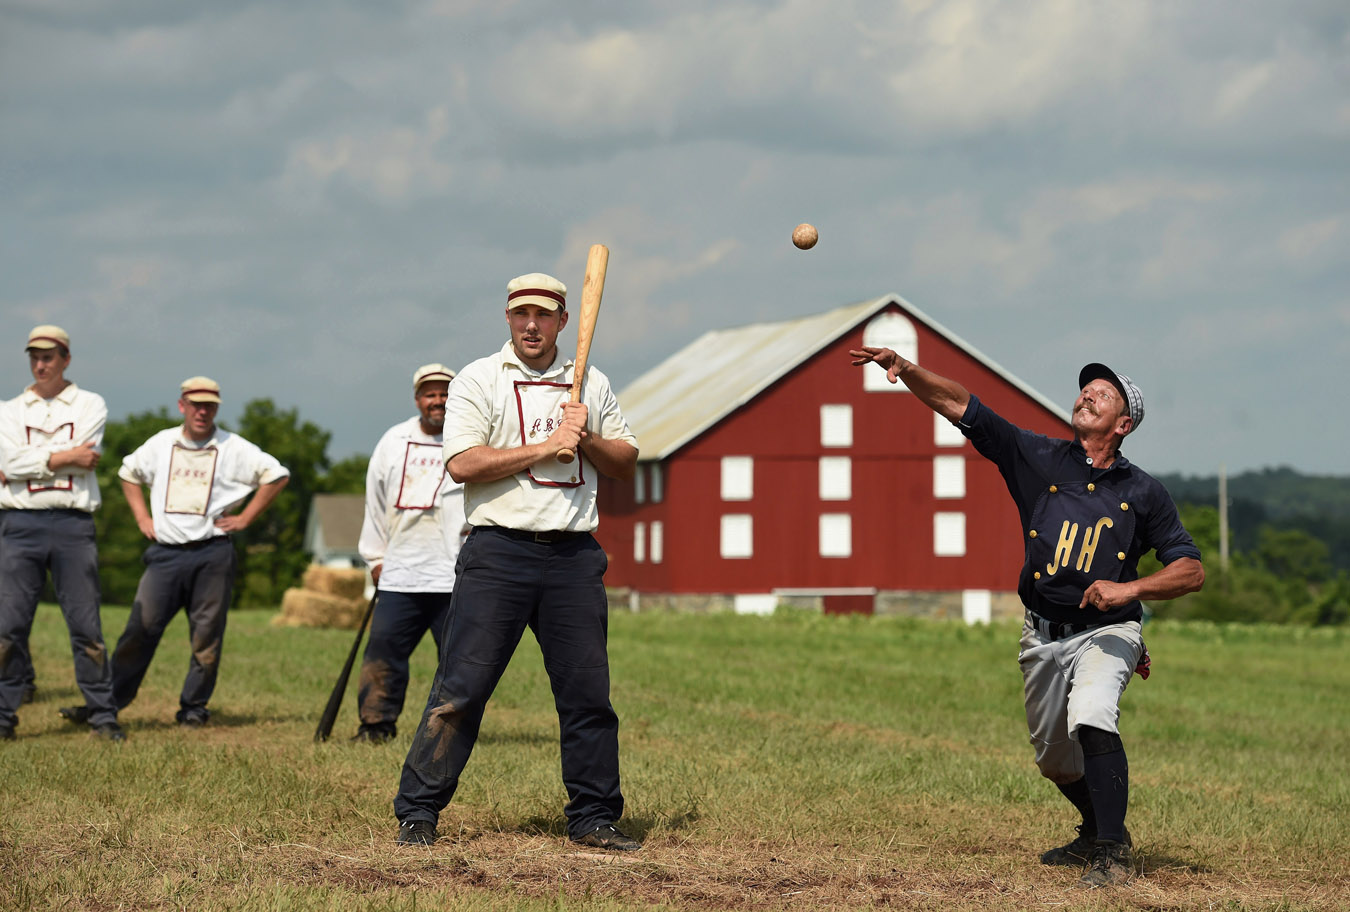 Rich {quote}Fingers{quote} Effinger, left, of the Atlantic Base Ball Club of Brooklin takes his turn at the plate as Jay {quote}Udderguy{quote} Kauflie, right, of the Hog and Hominy Base Ball Club of Tennessee makes a throw to second base to try to get a runner out during the Gettysburg National 19th Century Base Ball Festival on Saturday July 18, 2015 in Gettysburg, PA. Effinger's team is based in Smithtown, NY. The team pays tribute to a nineteenth century team called the Brooklyn Atlantics. (Photo by Matt McClain/The Washington Post)